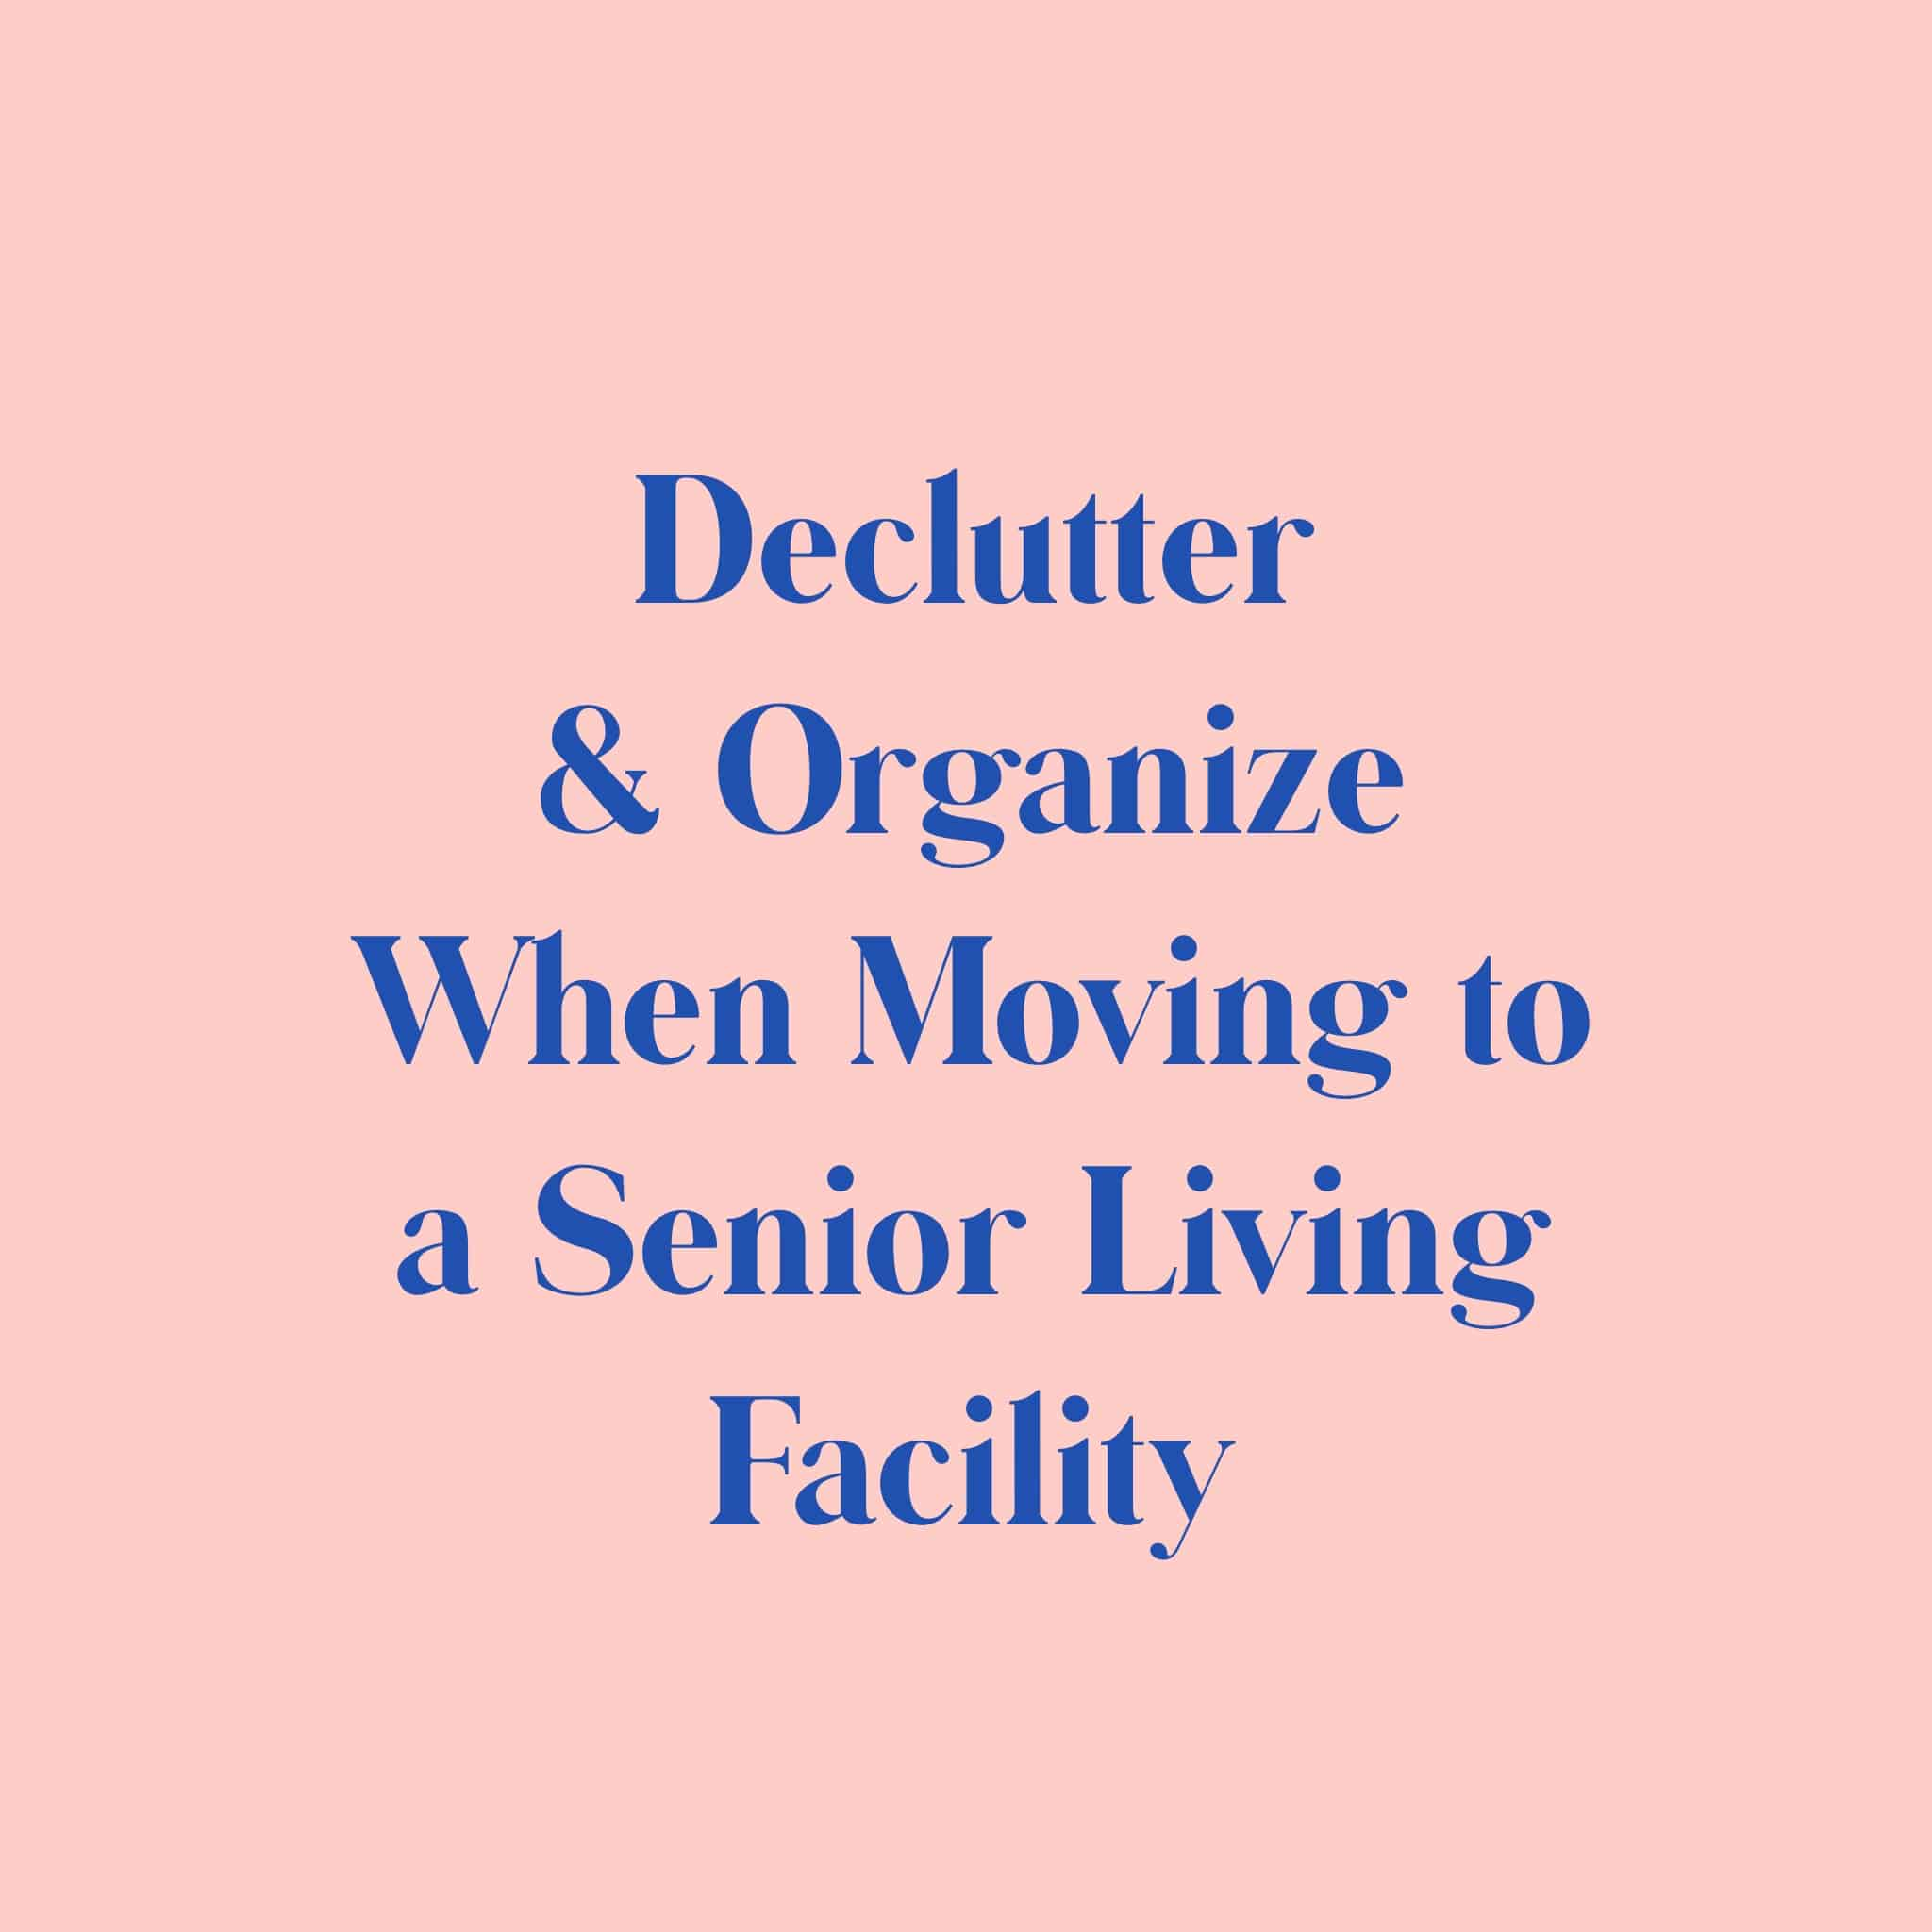 Declutter and Organize When Moving to a Senior Living Facility